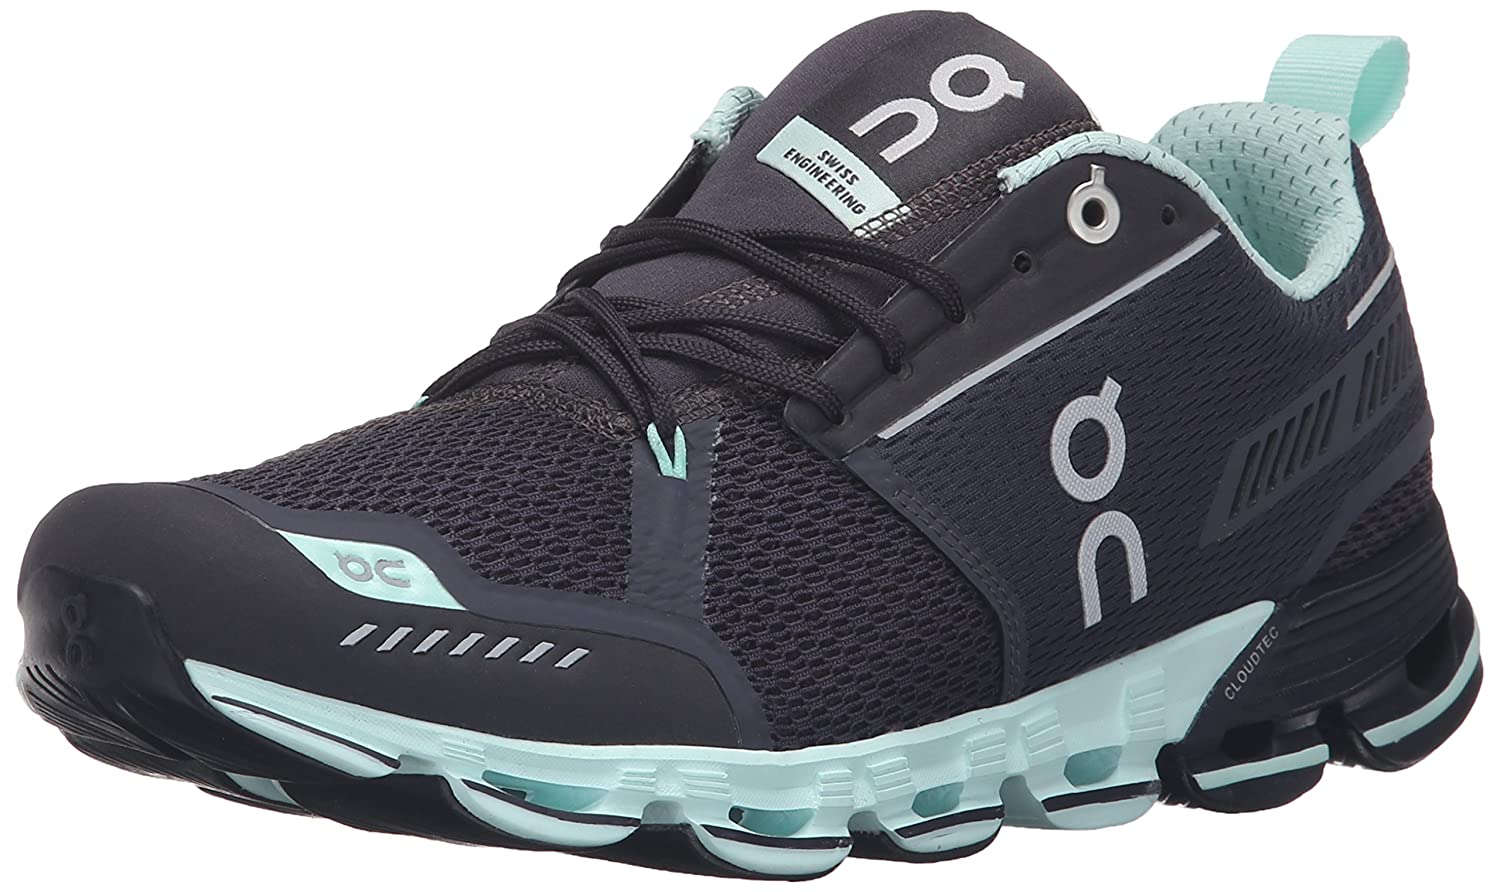 On Running Men's Cloudflyer Sneaker Iron/Sky B01HO04TRS 5 B(M) US - Women's|Grey/Jade